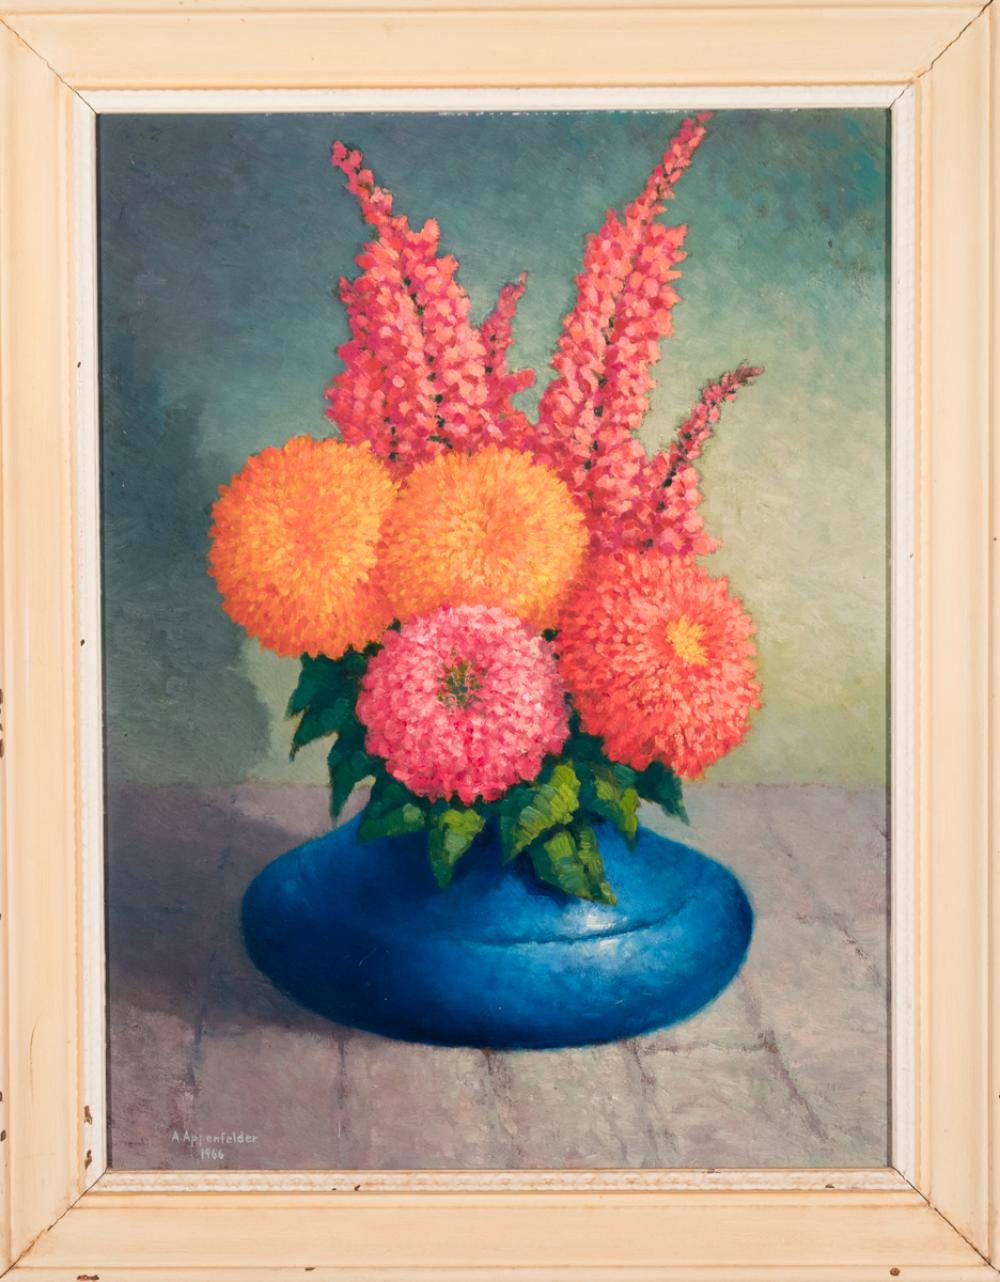 A. Appenfelder, 20th century, Flowers in a blue vase, 1966, oil on canvas, 24 x 18 inches